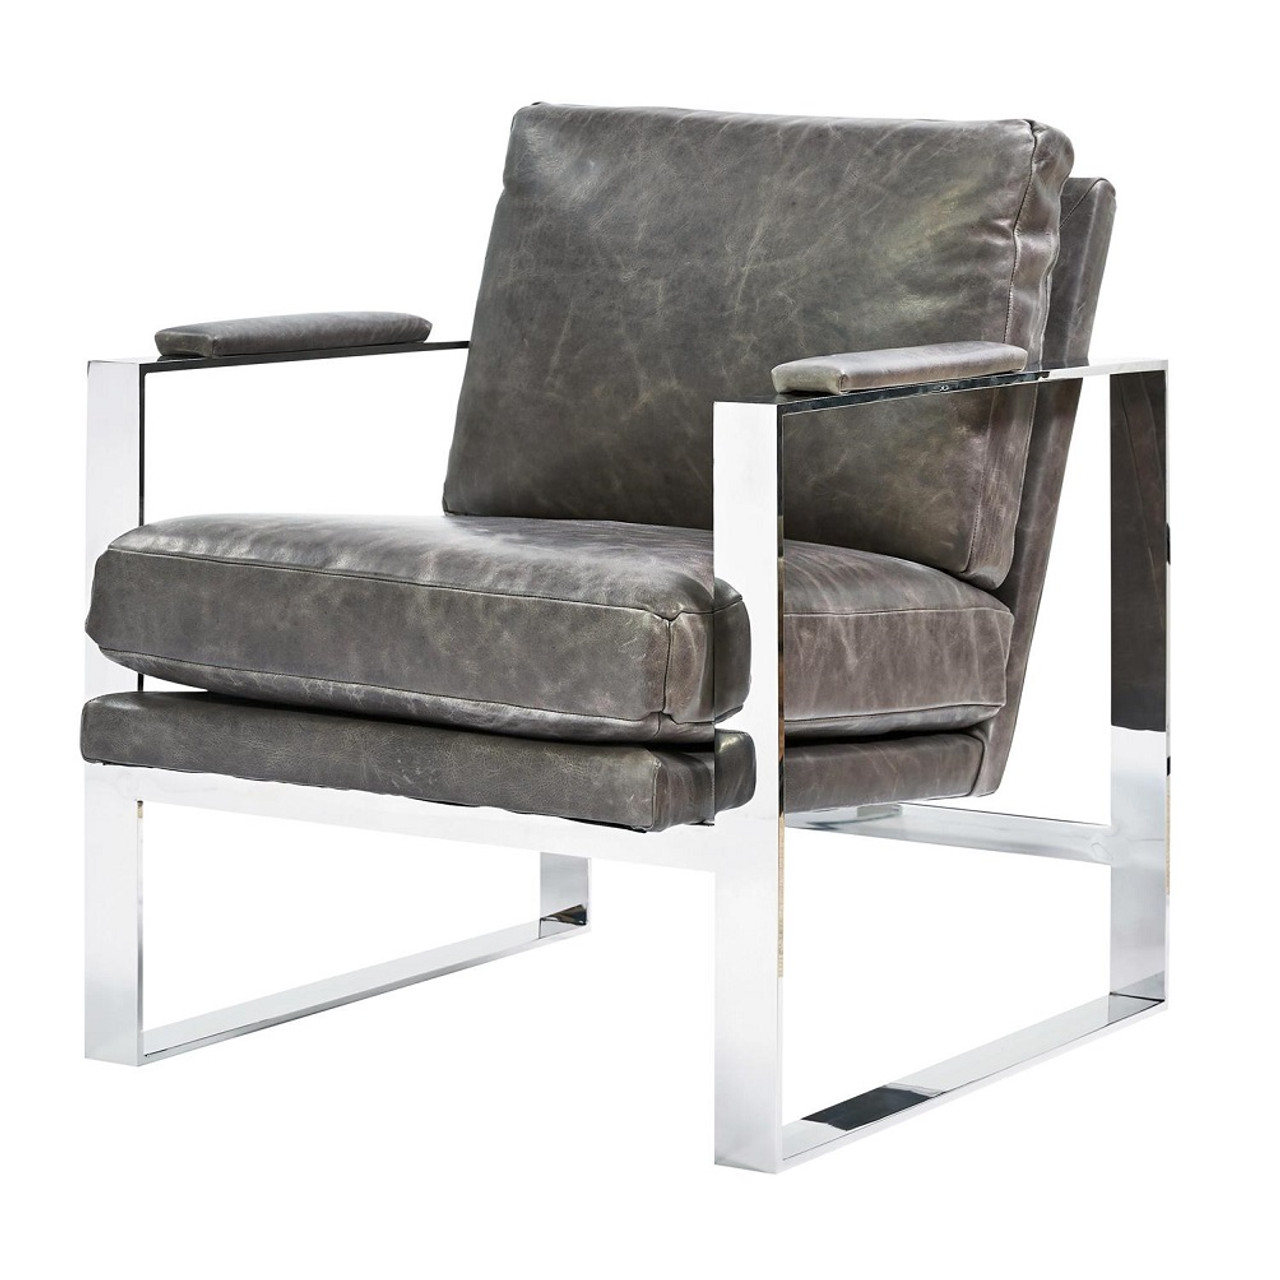 leather and metal chair. Elan Mid Century Modern Grey Leather Metal Arm Chair And